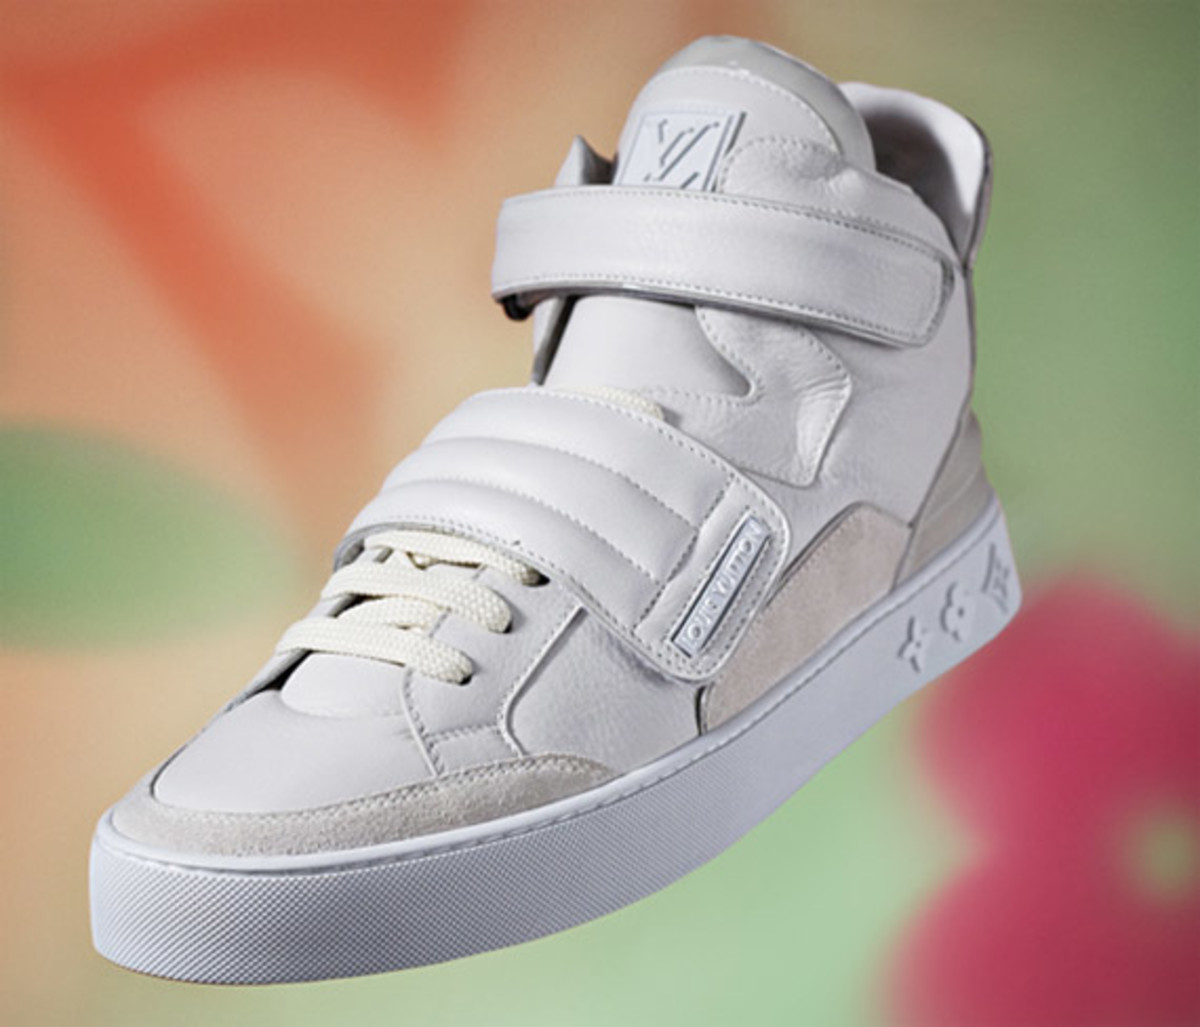 louis-vuitton-x-kanye-west-sneakers-preview-2